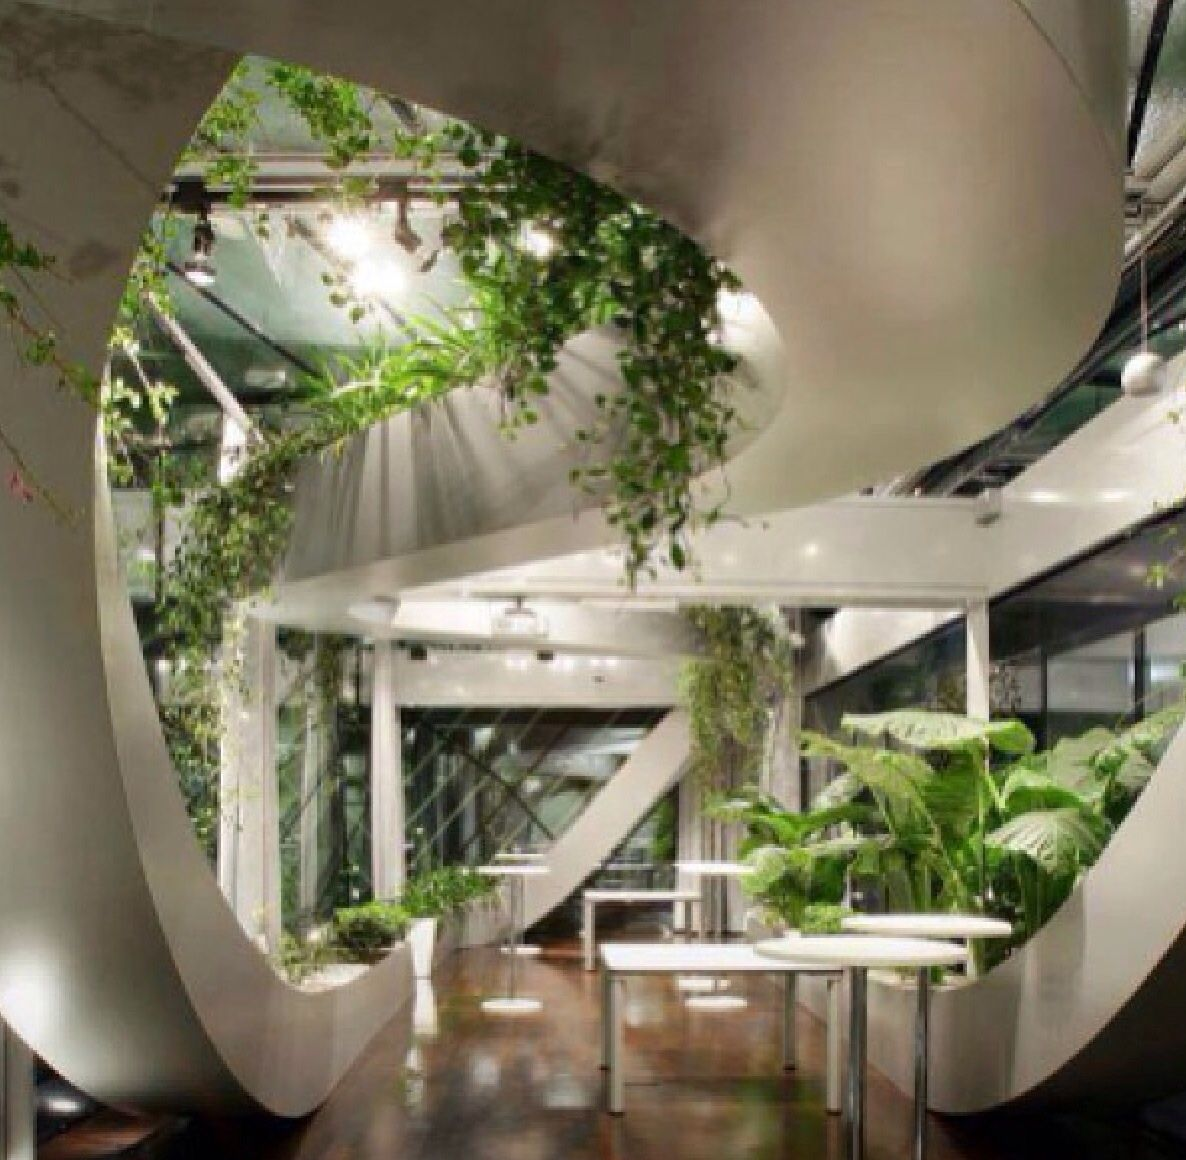 35 Indoor Garden Ideas To Green Your Home: Plant Life/vegetation Enhance This Atrium